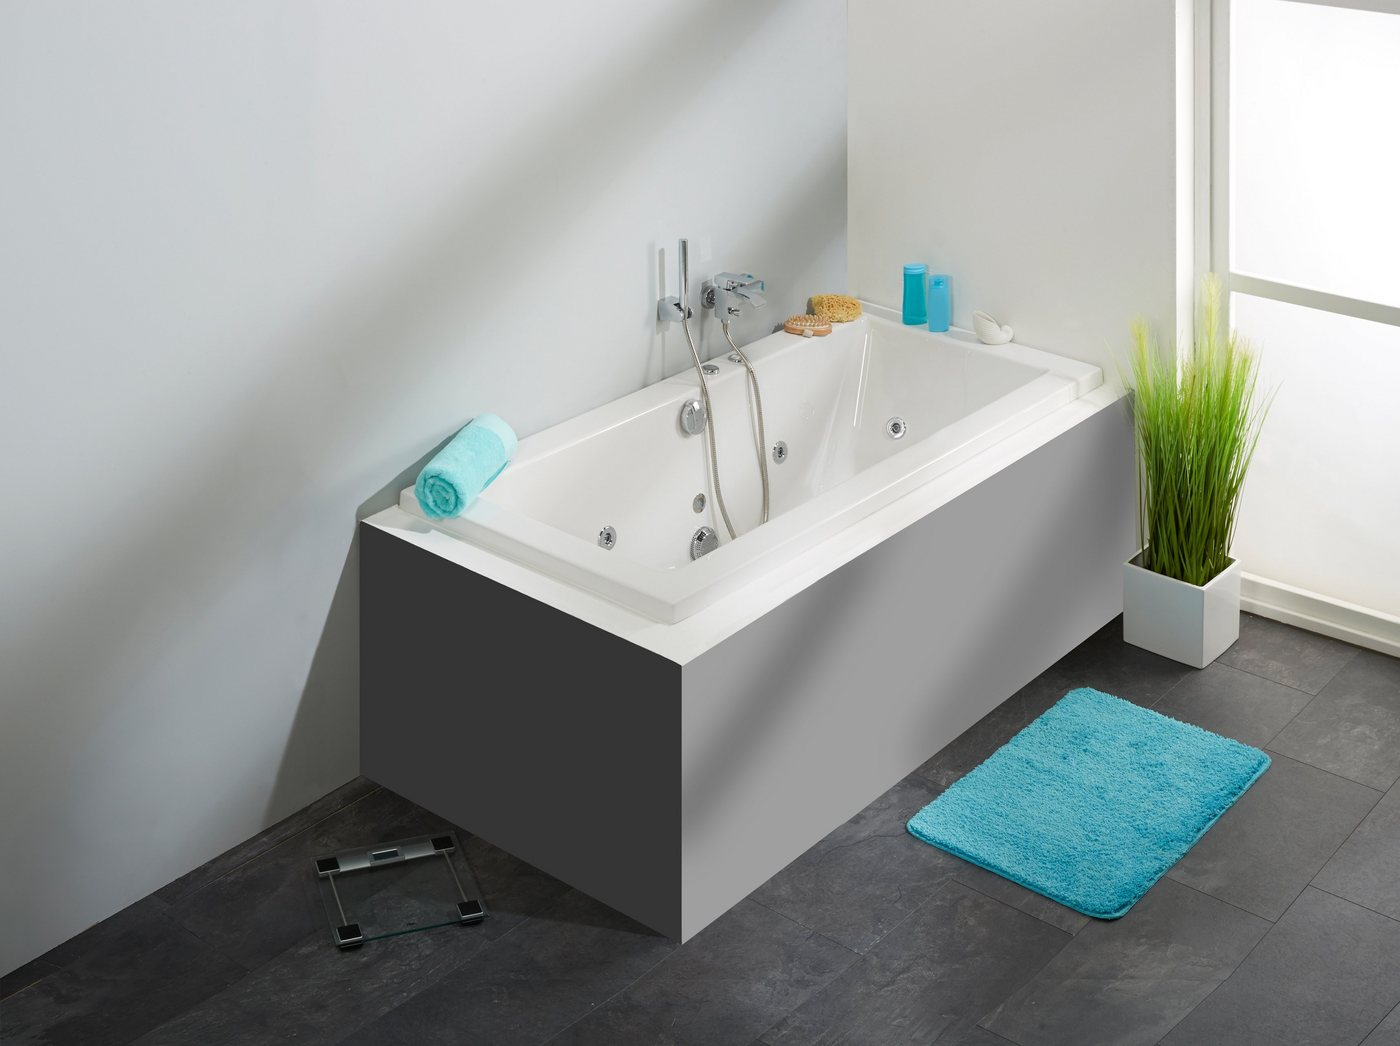 OTTOFOND Whirlpoolwanne »Cubic«, B/T/H in cm: 170/75/62,5; Whirlpool-System Premium